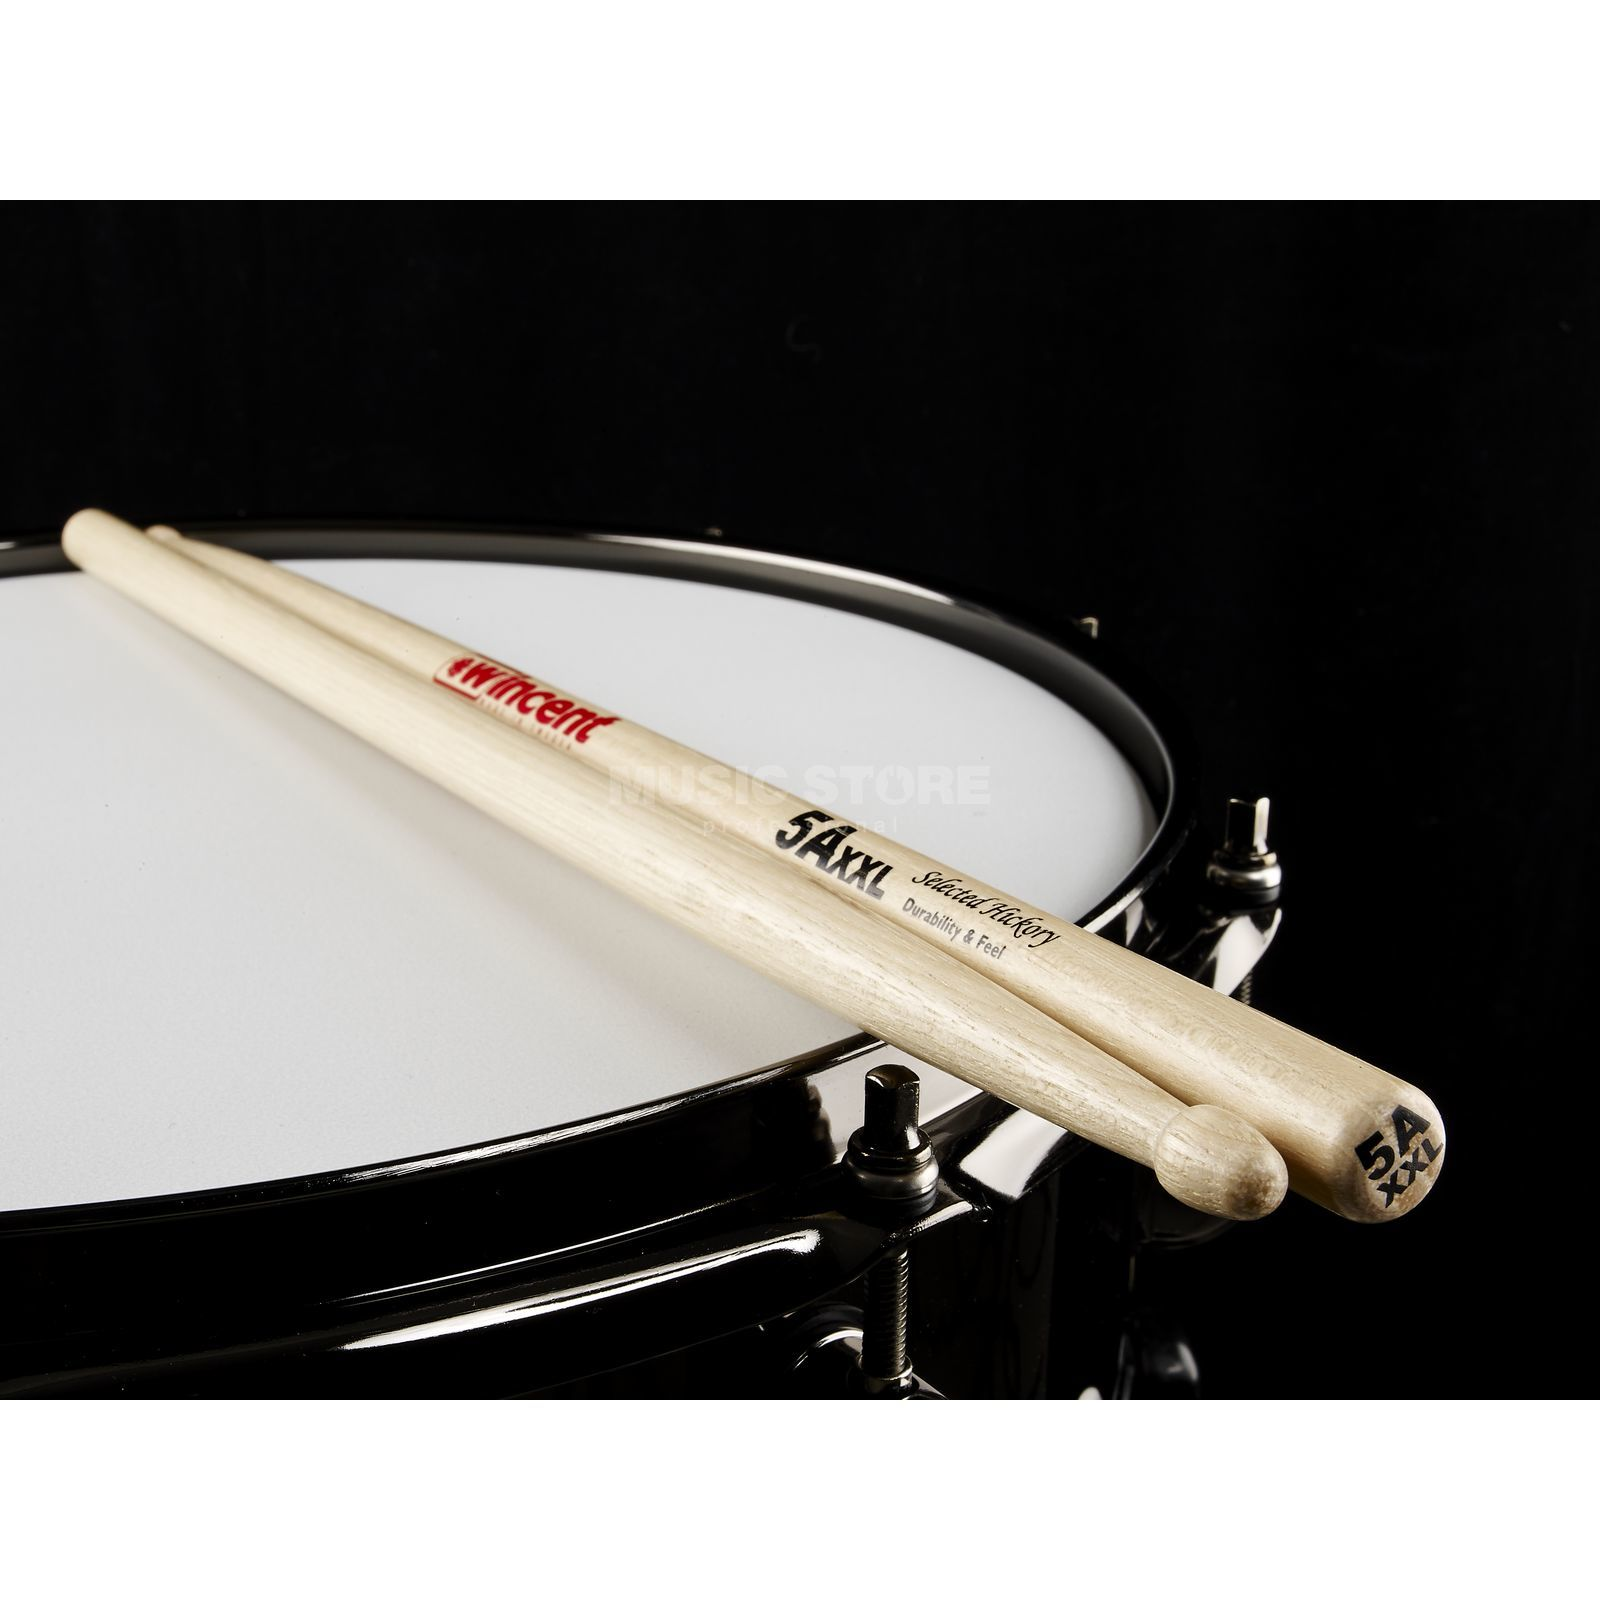 Wincent 5A XXL Sticks Hickory Product Image